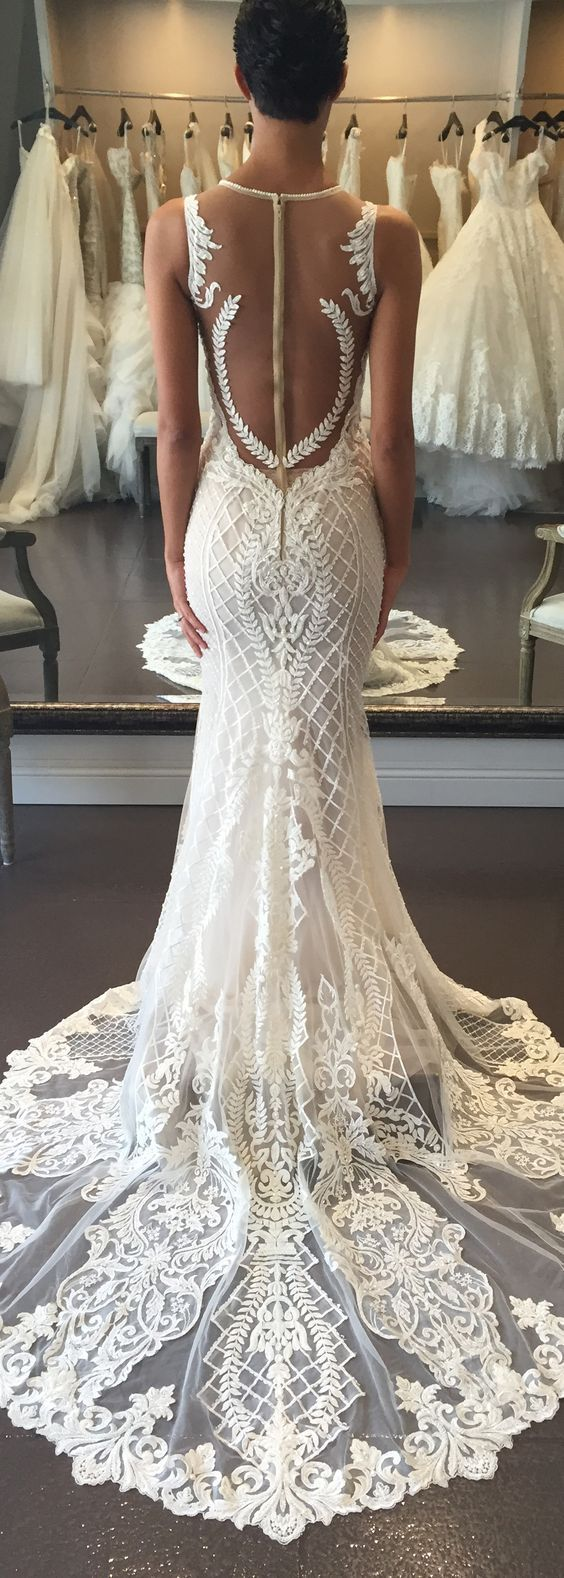 Berta Brida Wedding Dresses / http://www.deerpearlflowers.com/berta-fw-2017-wedding-dresses/3/